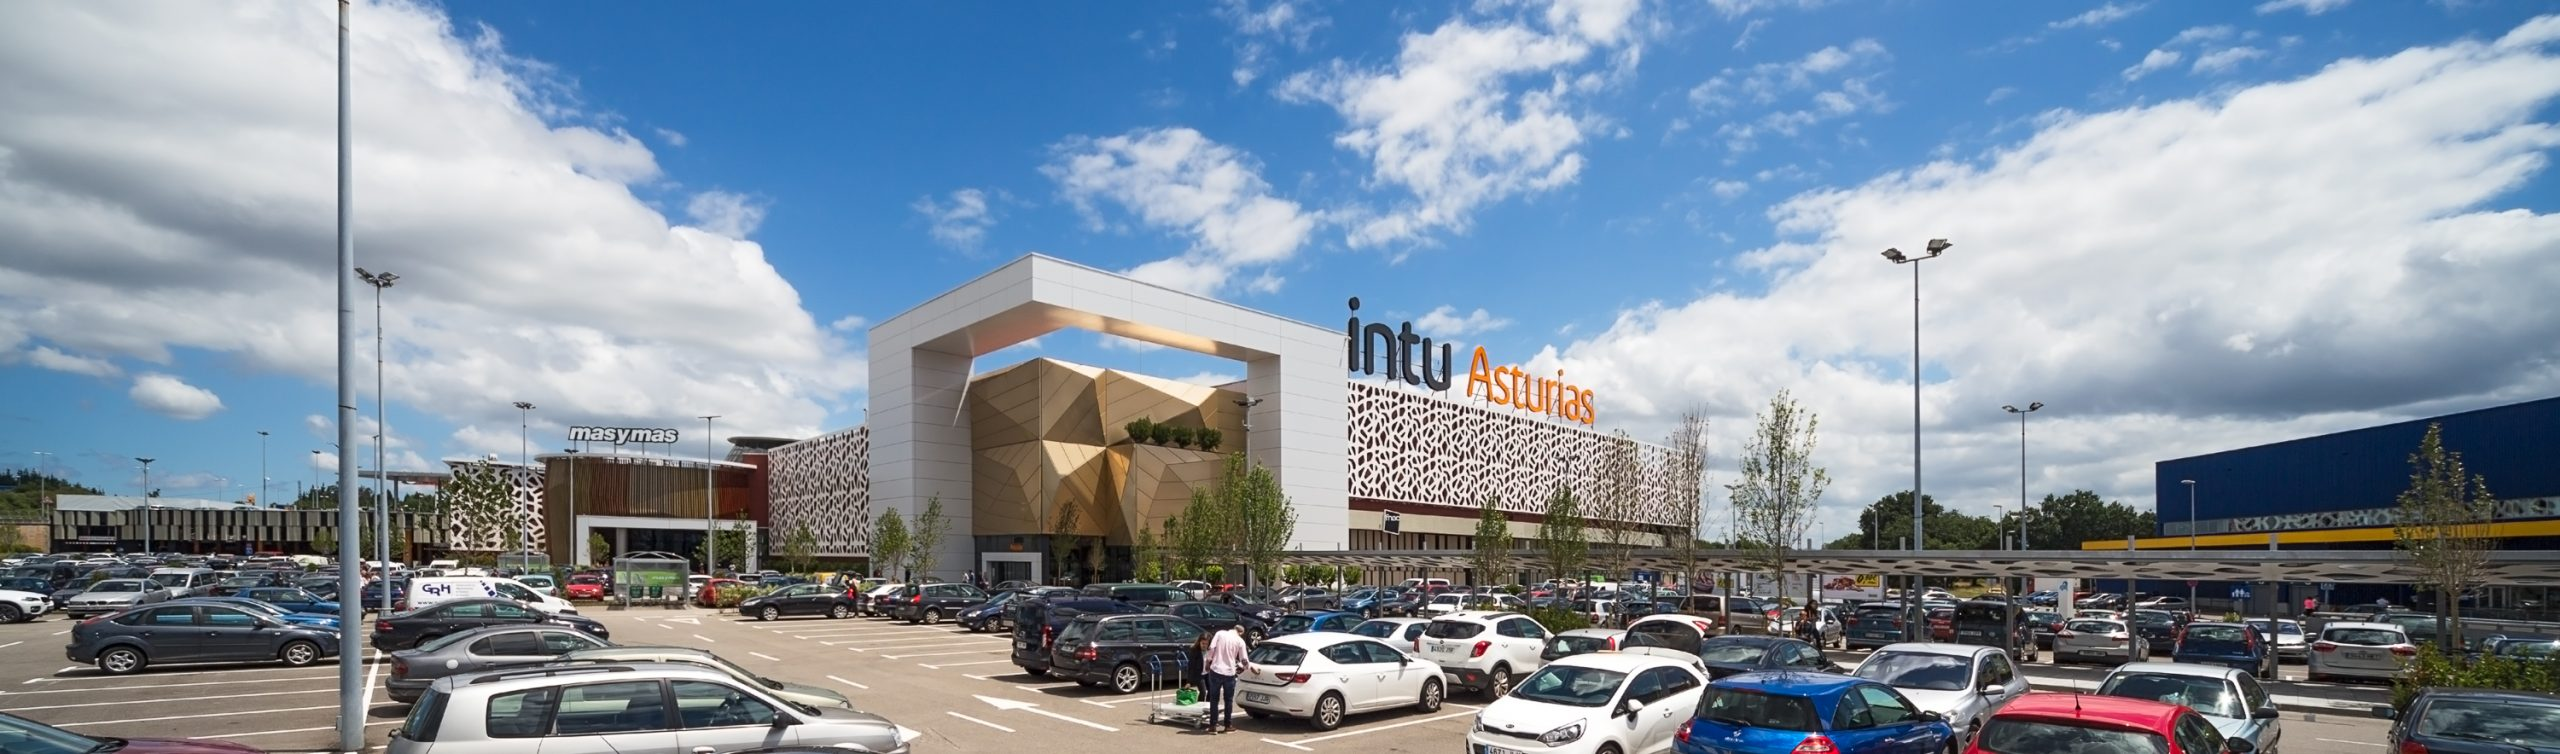 ECE Fund II in Spain buys Intu Asturias shopping center in Oviedo from intu properties plc and Canada Pension Plan Investment Board for EUR 290 million